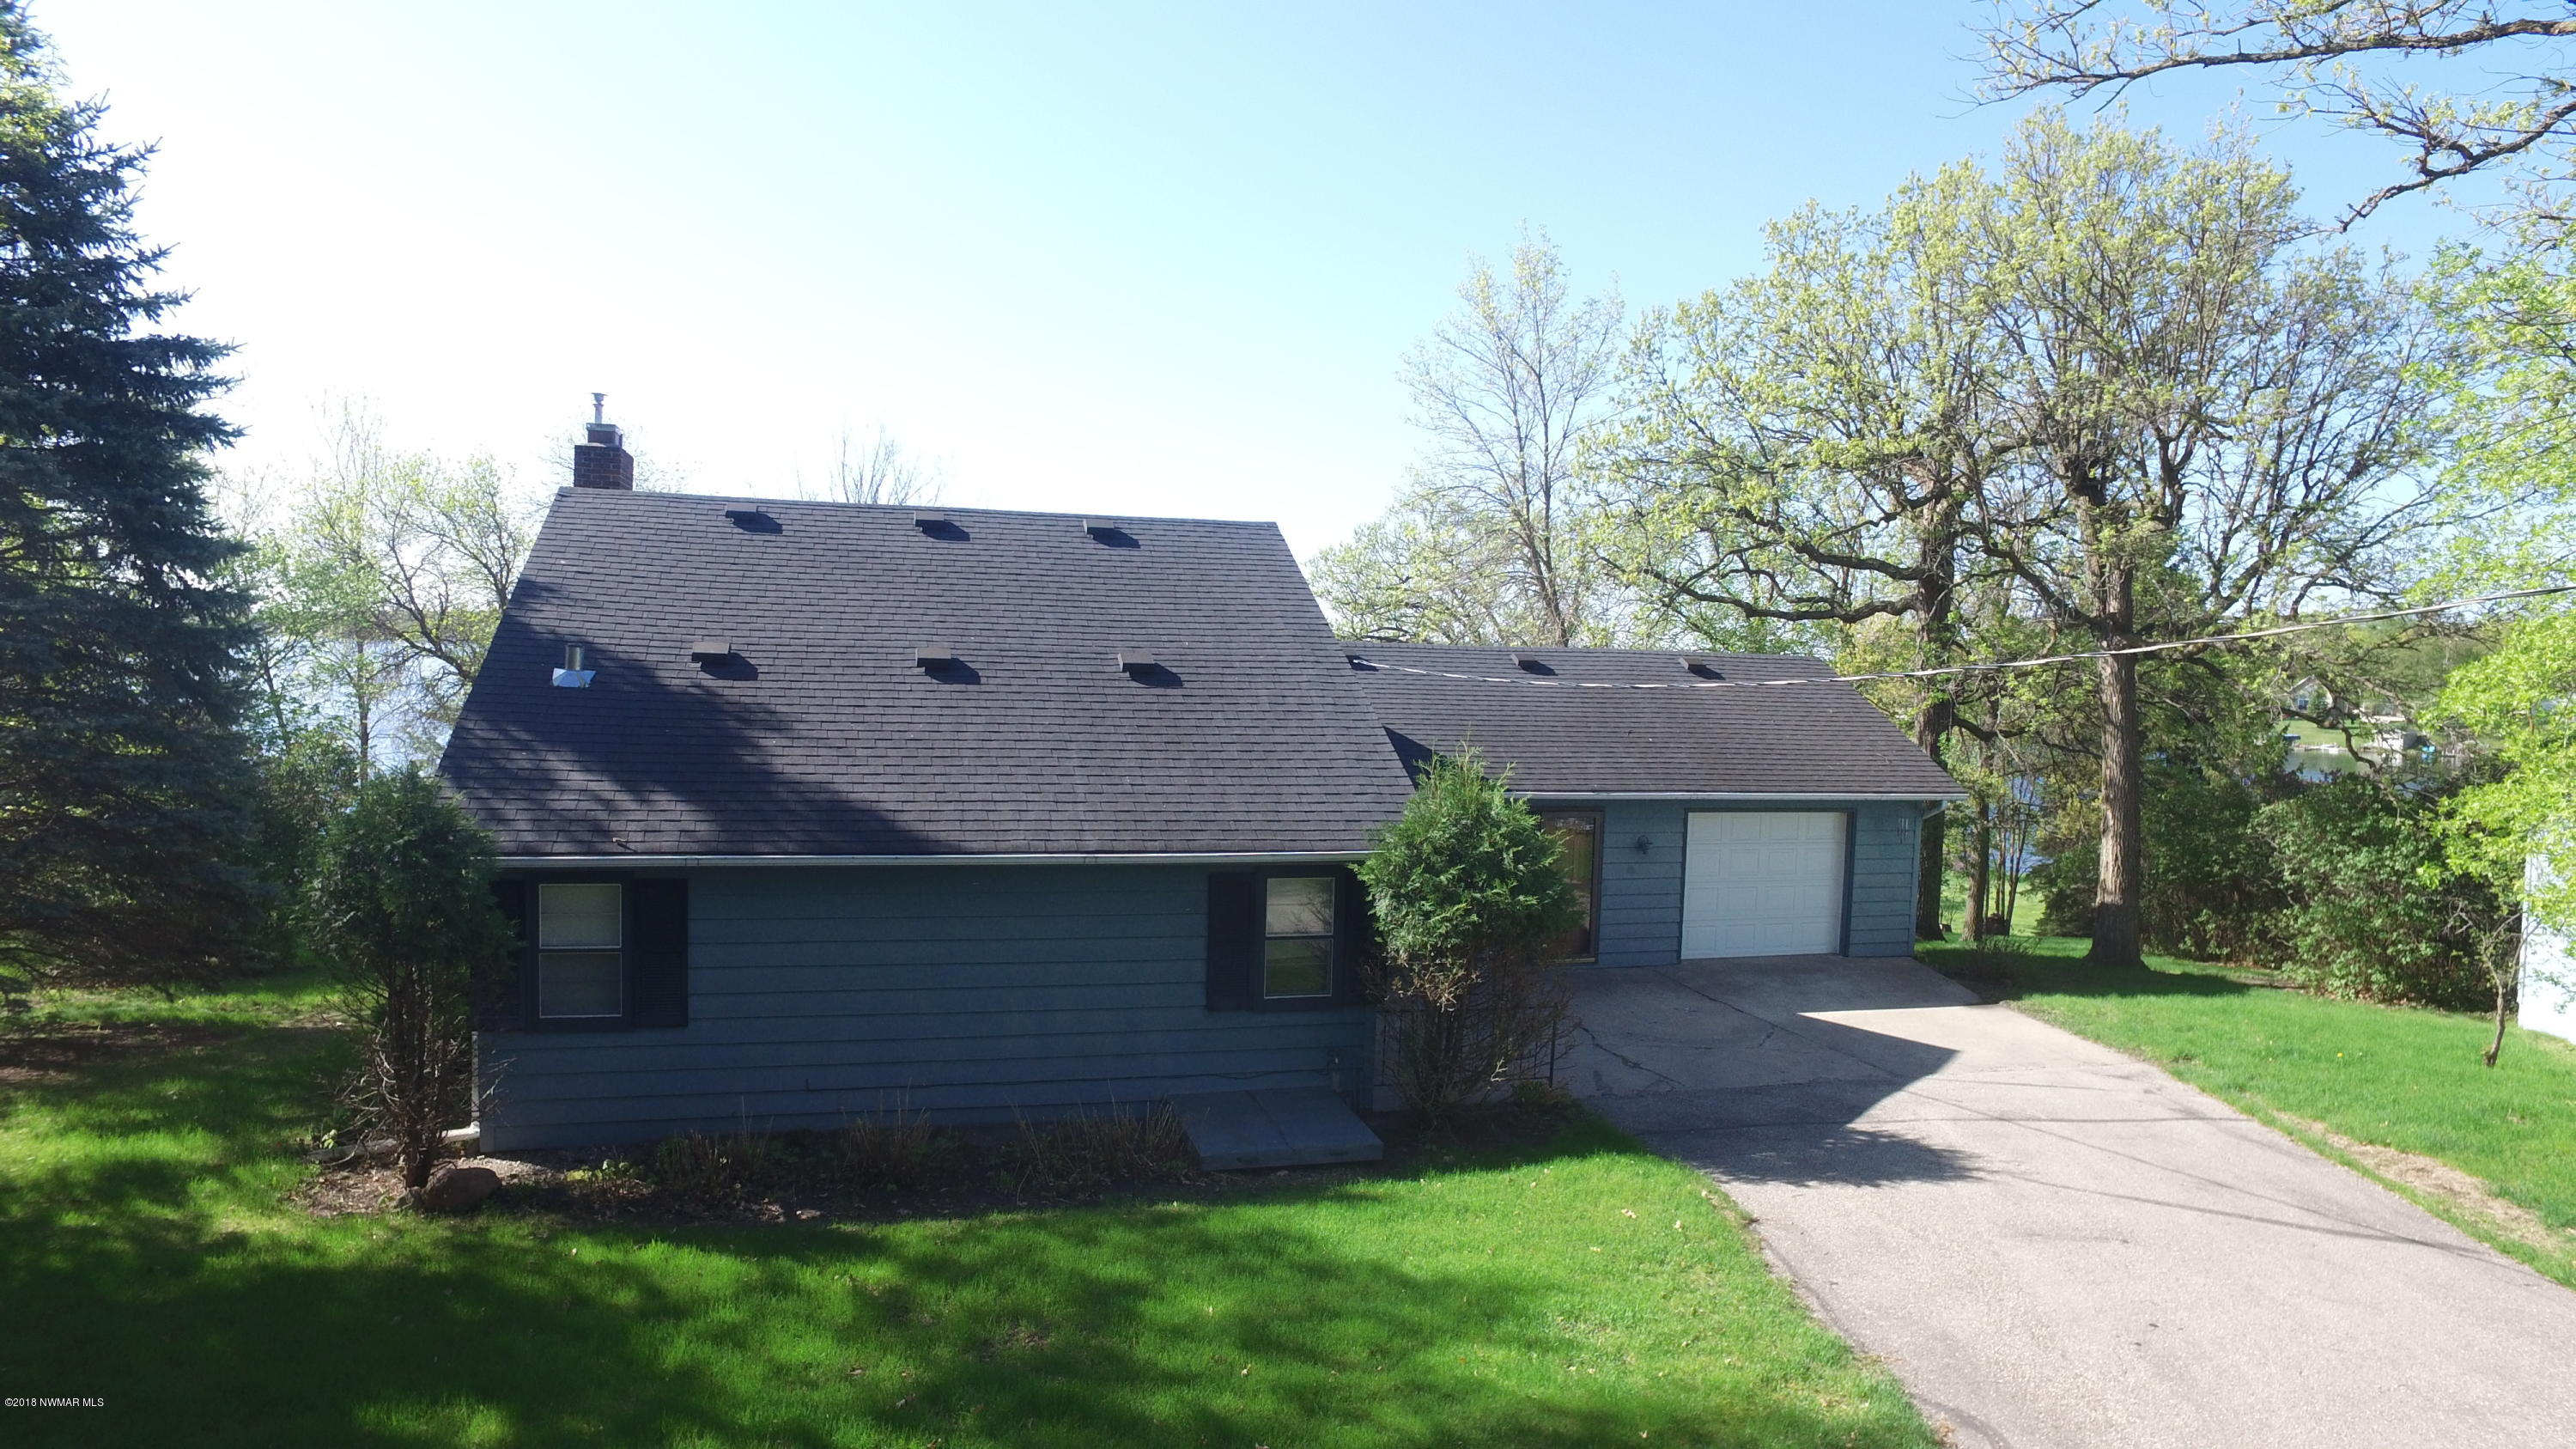 View of the home from the road. Offers an asphalt driveway and large concrete patio.